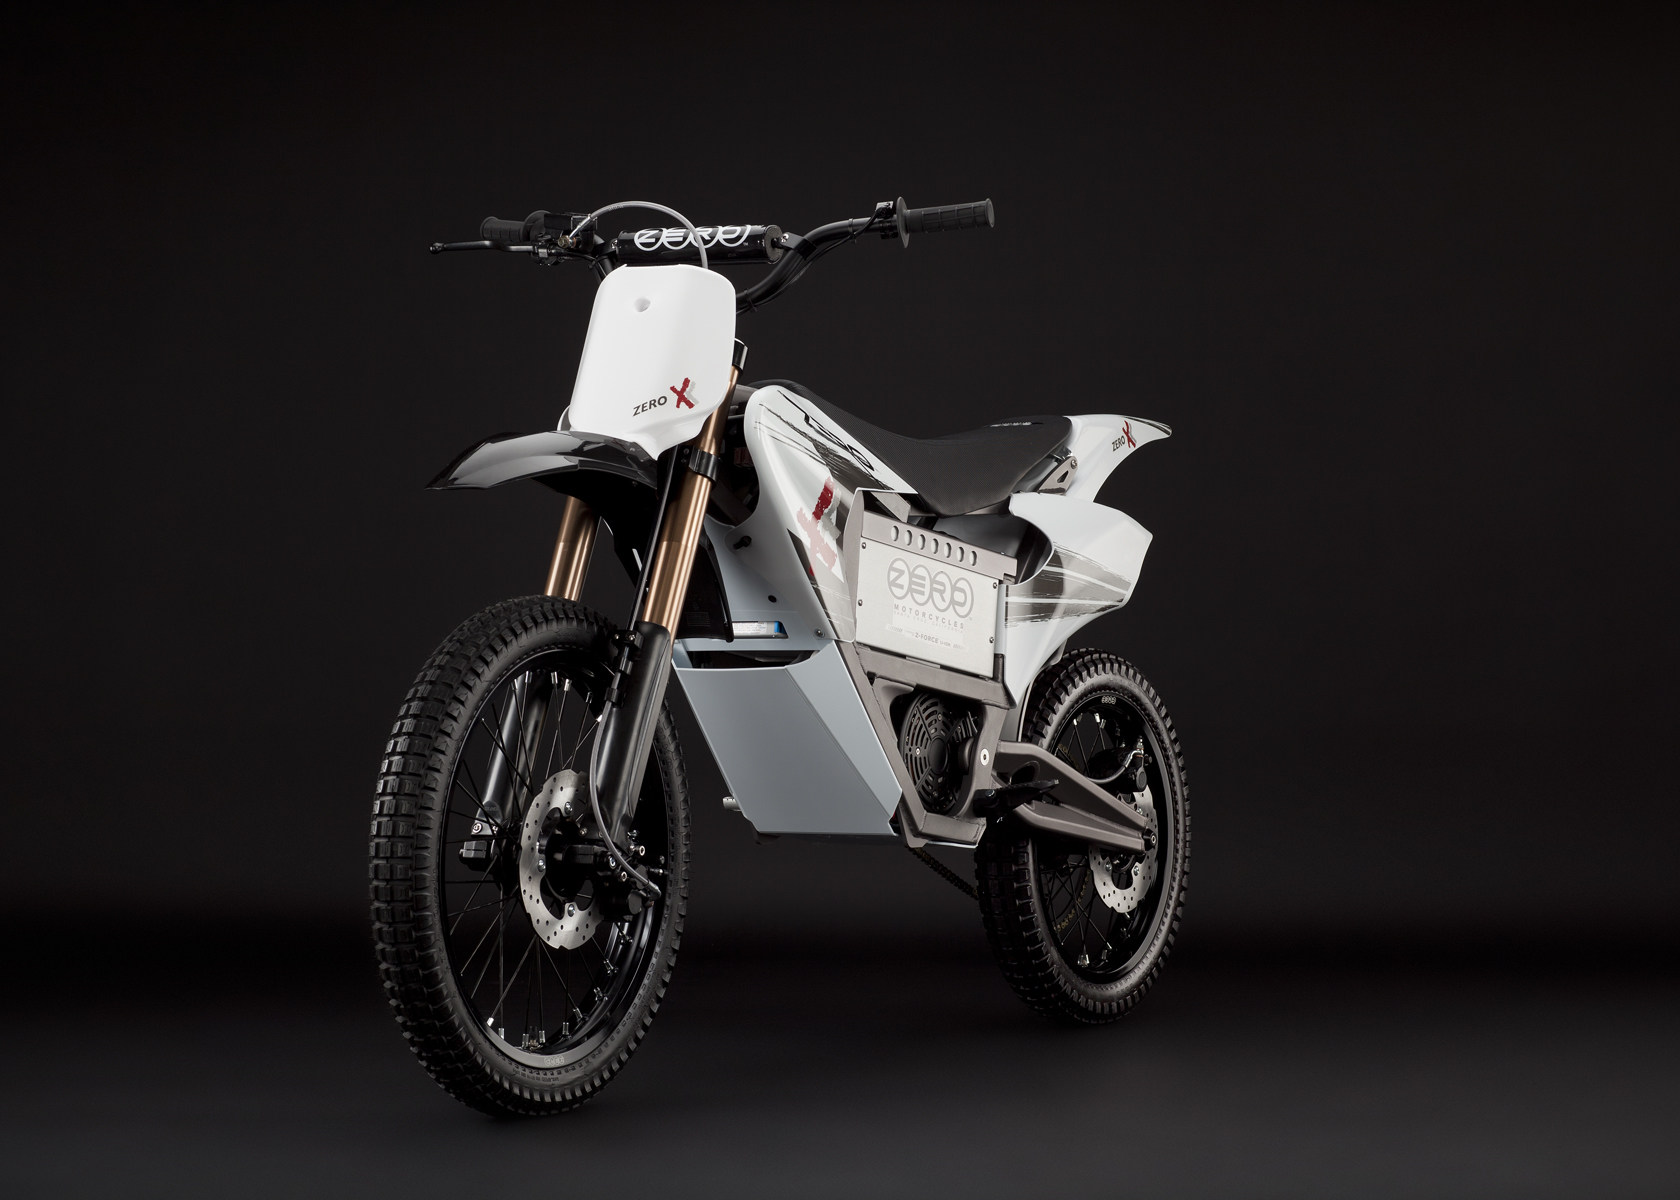 '.2011 Zero X Electric Motorcycle: Angle Left, Dirt Model.'